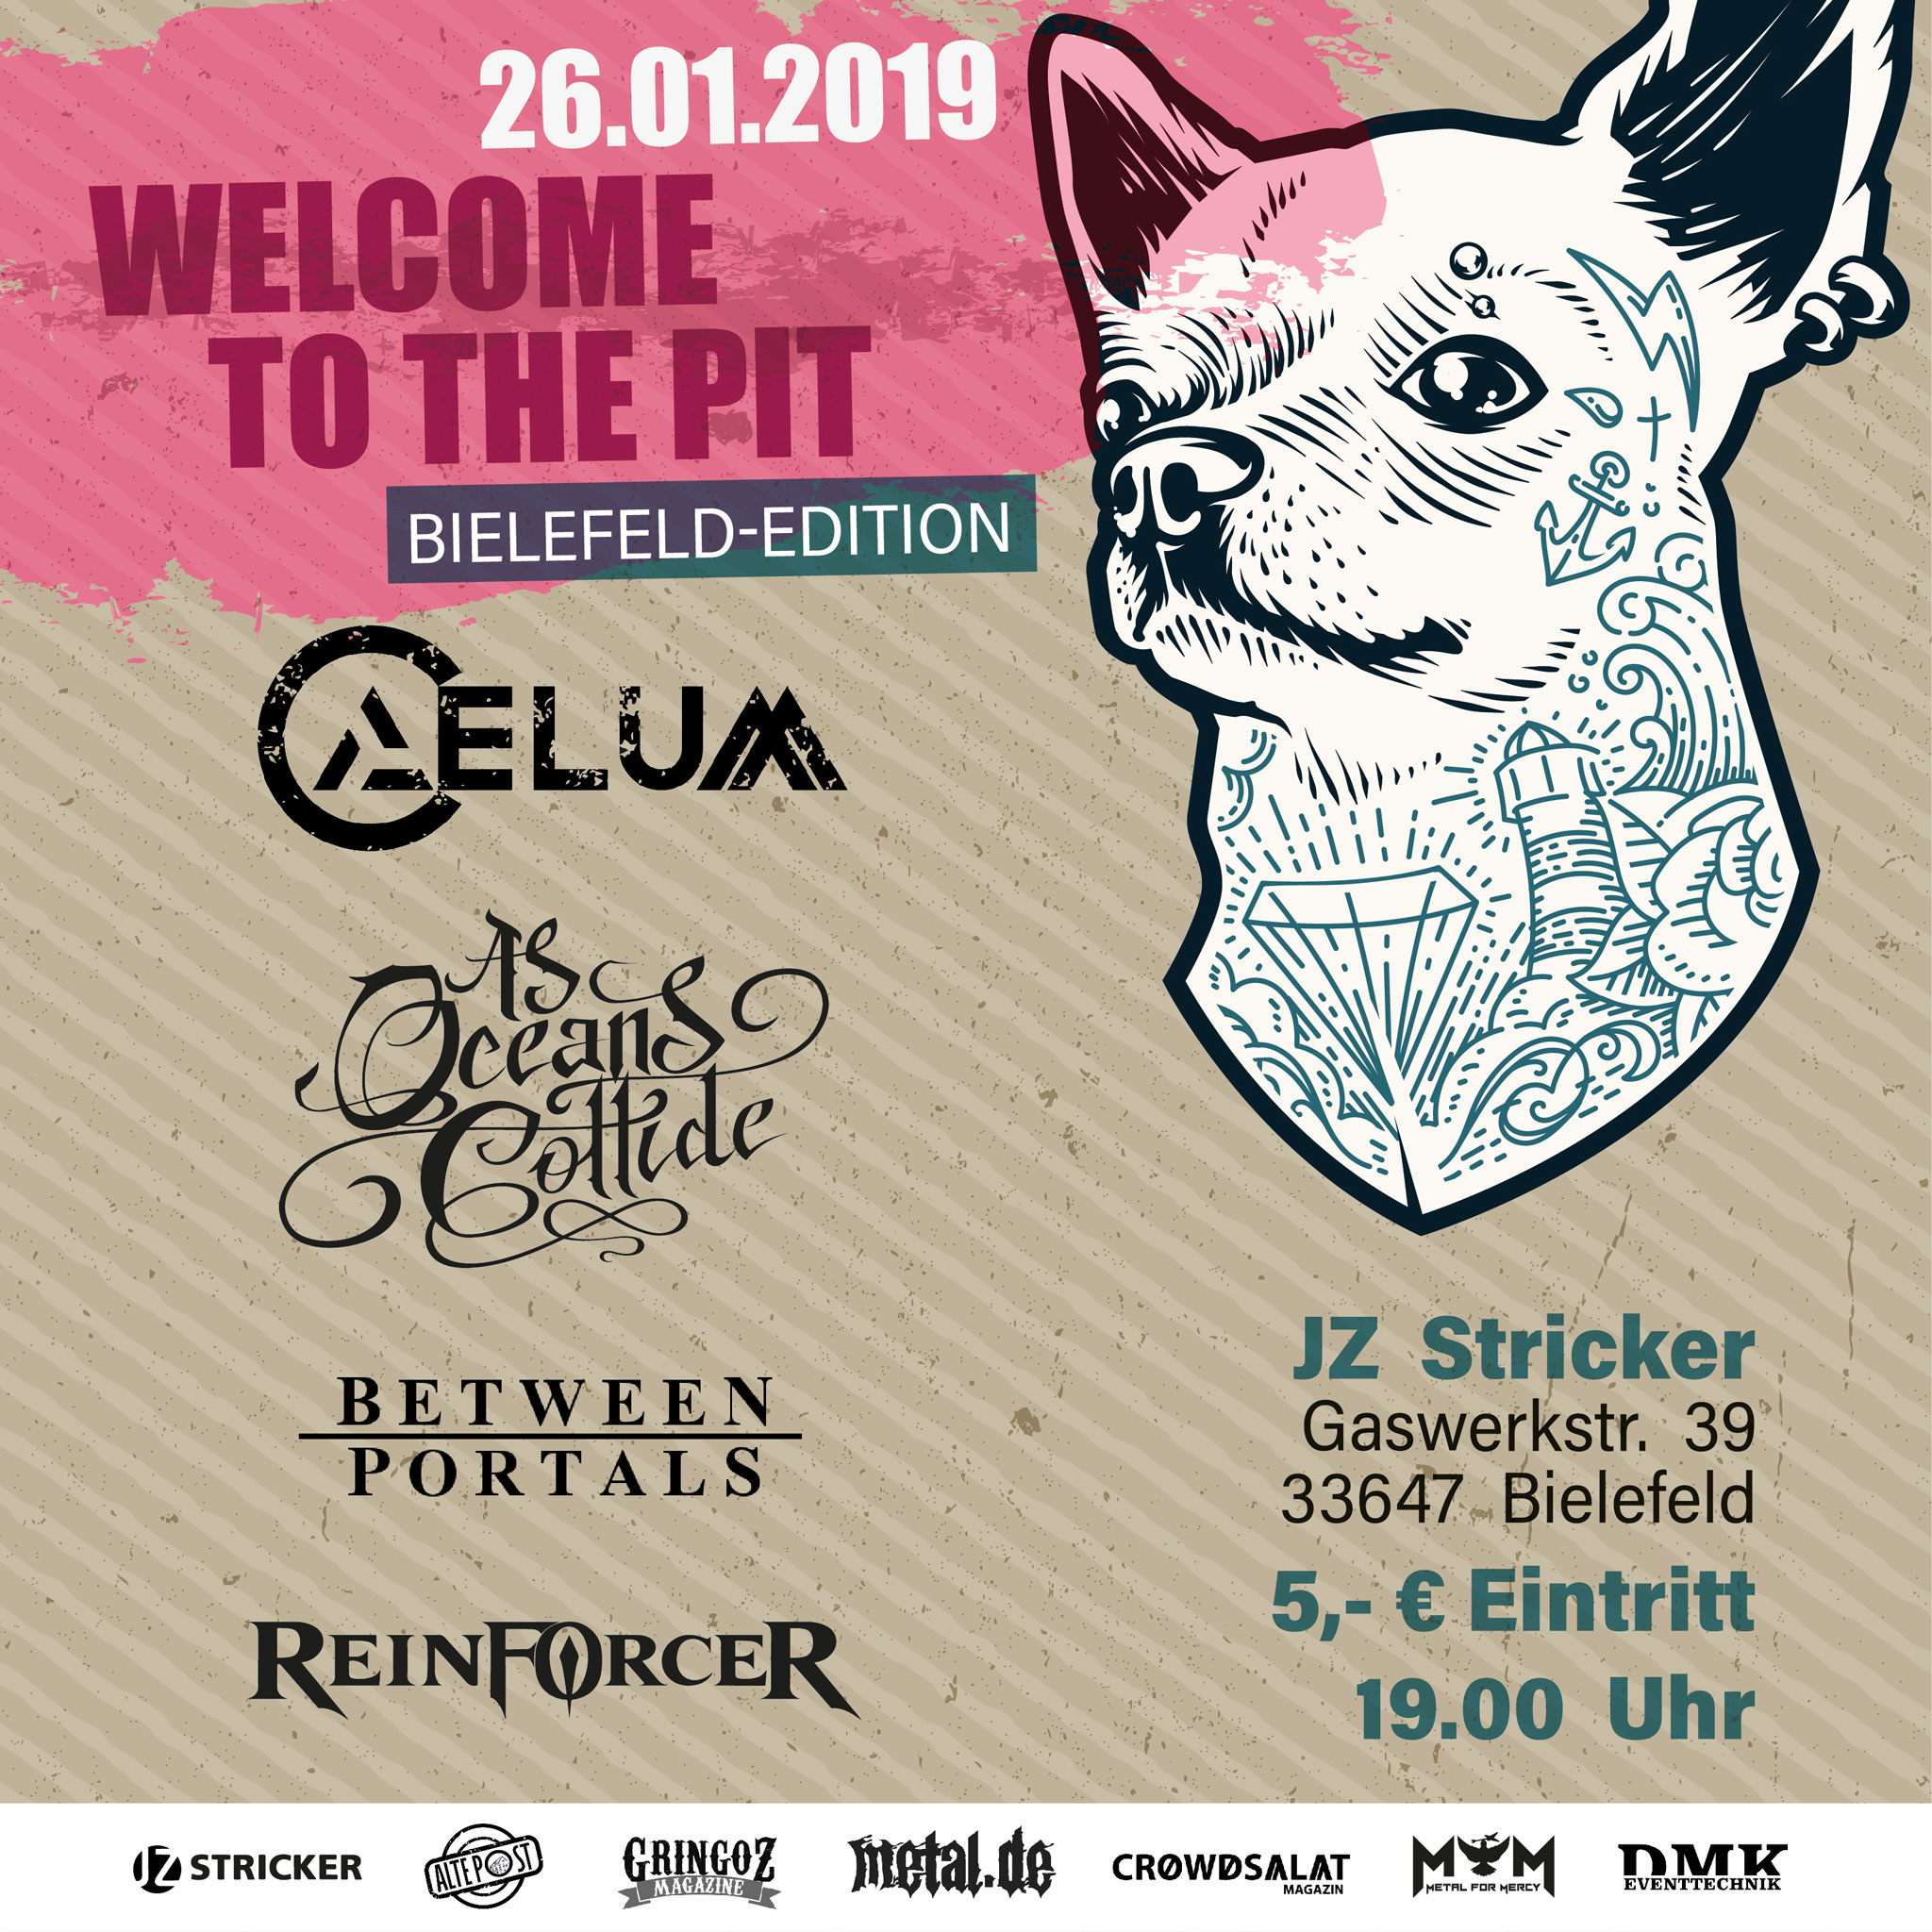 Welcome To The Pit Bielefeld Edition